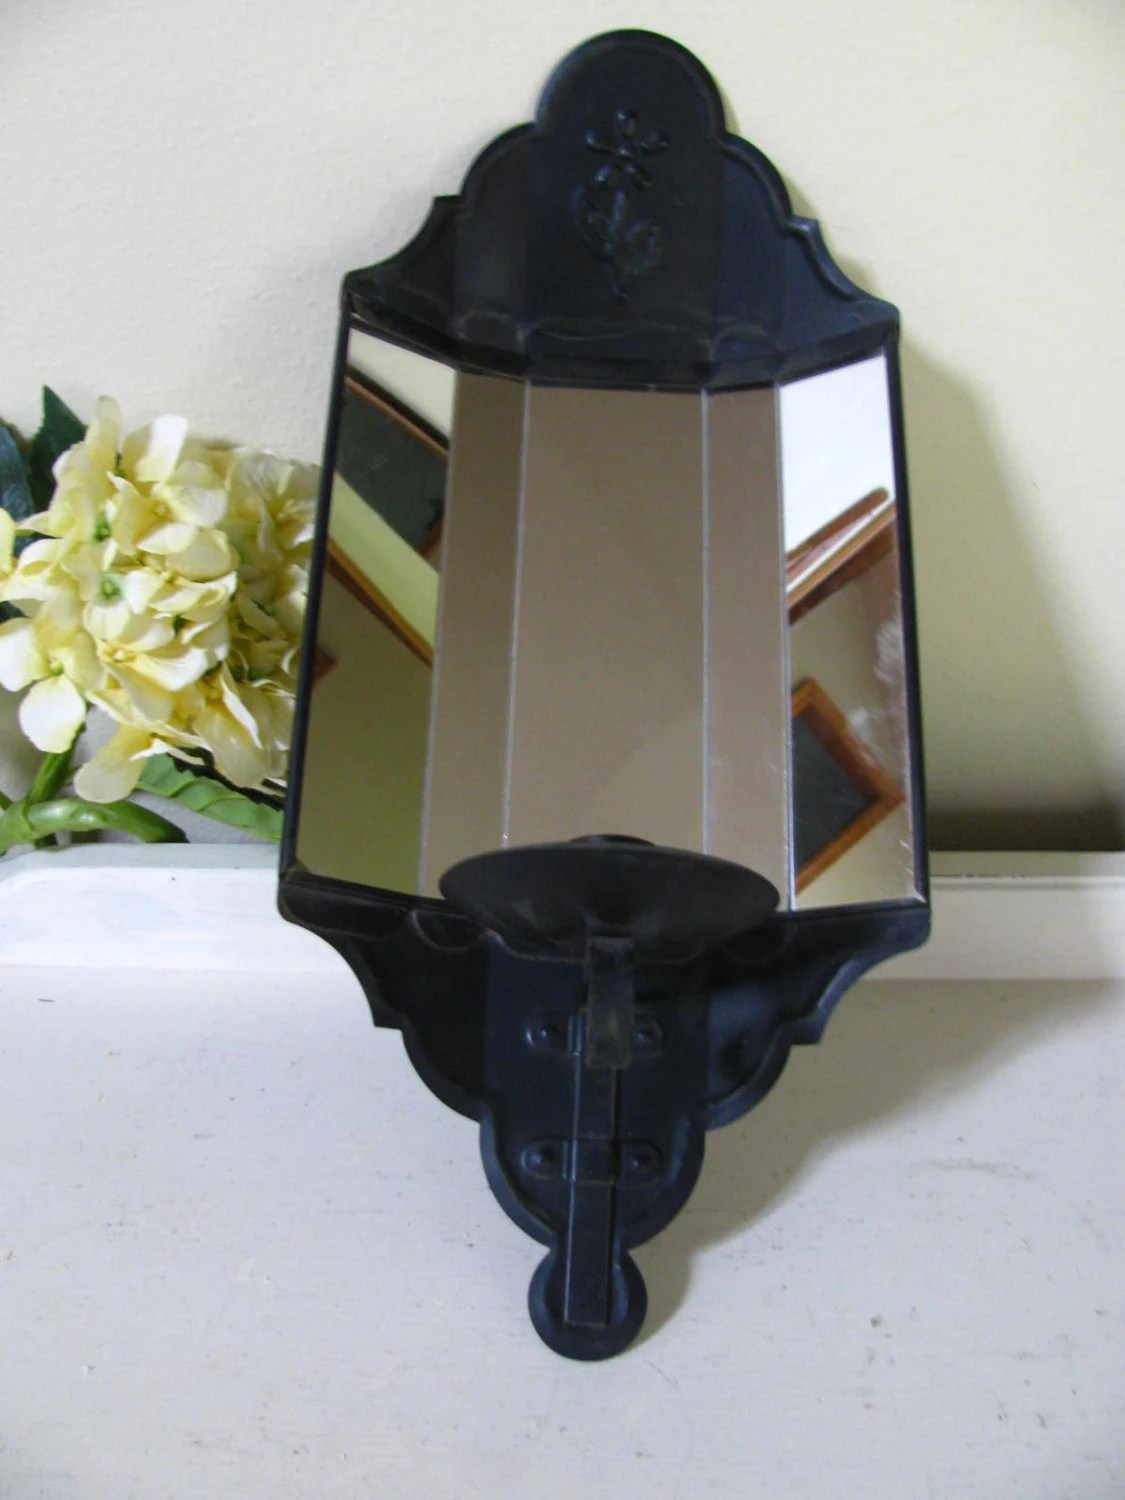 Vintage Black Mirror Candle Holder Sconce Wall Mount on Wall Mounted Candle Sconce id=33021